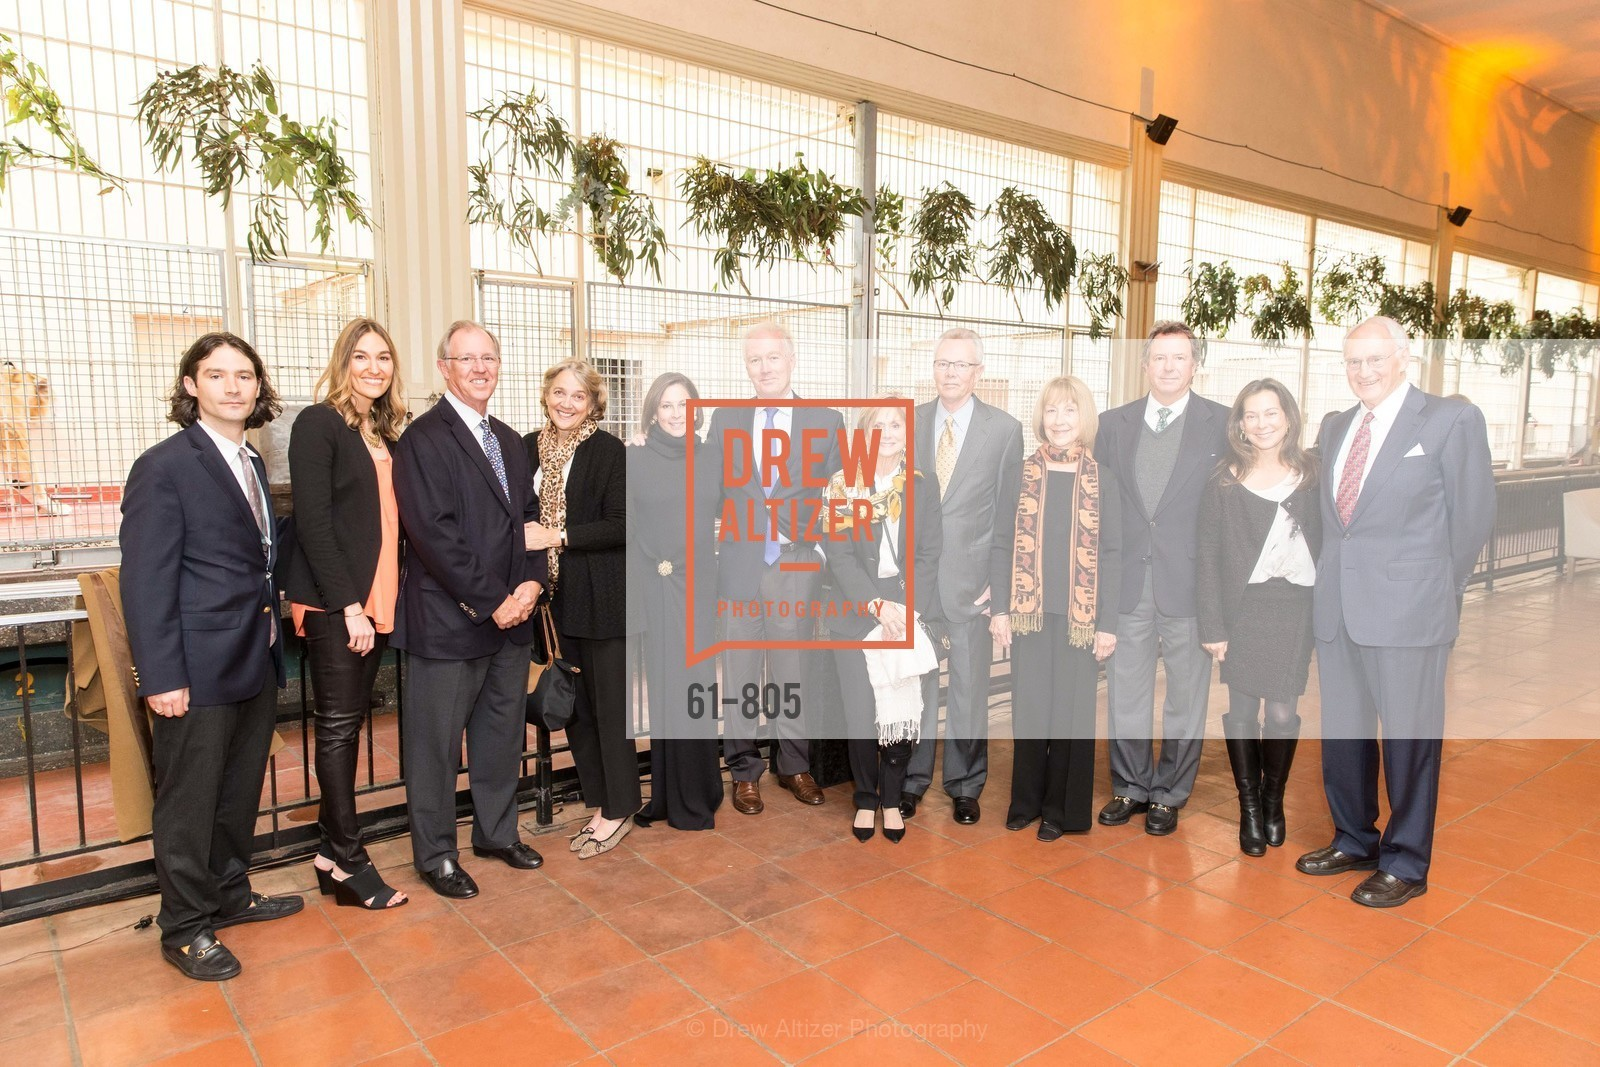 Tad Moore, Katharine Morris, Jamie Greene, Marritje Greene, Isabel Moore, Stephanie Keeney, Bob Keeney, Sandra Morris, John Stewart, Sue Stewart, George Morris, ZOOFEST 2015, US, April 25th, 2015,Drew Altizer, Drew Altizer Photography, full-service agency, private events, San Francisco photographer, photographer california